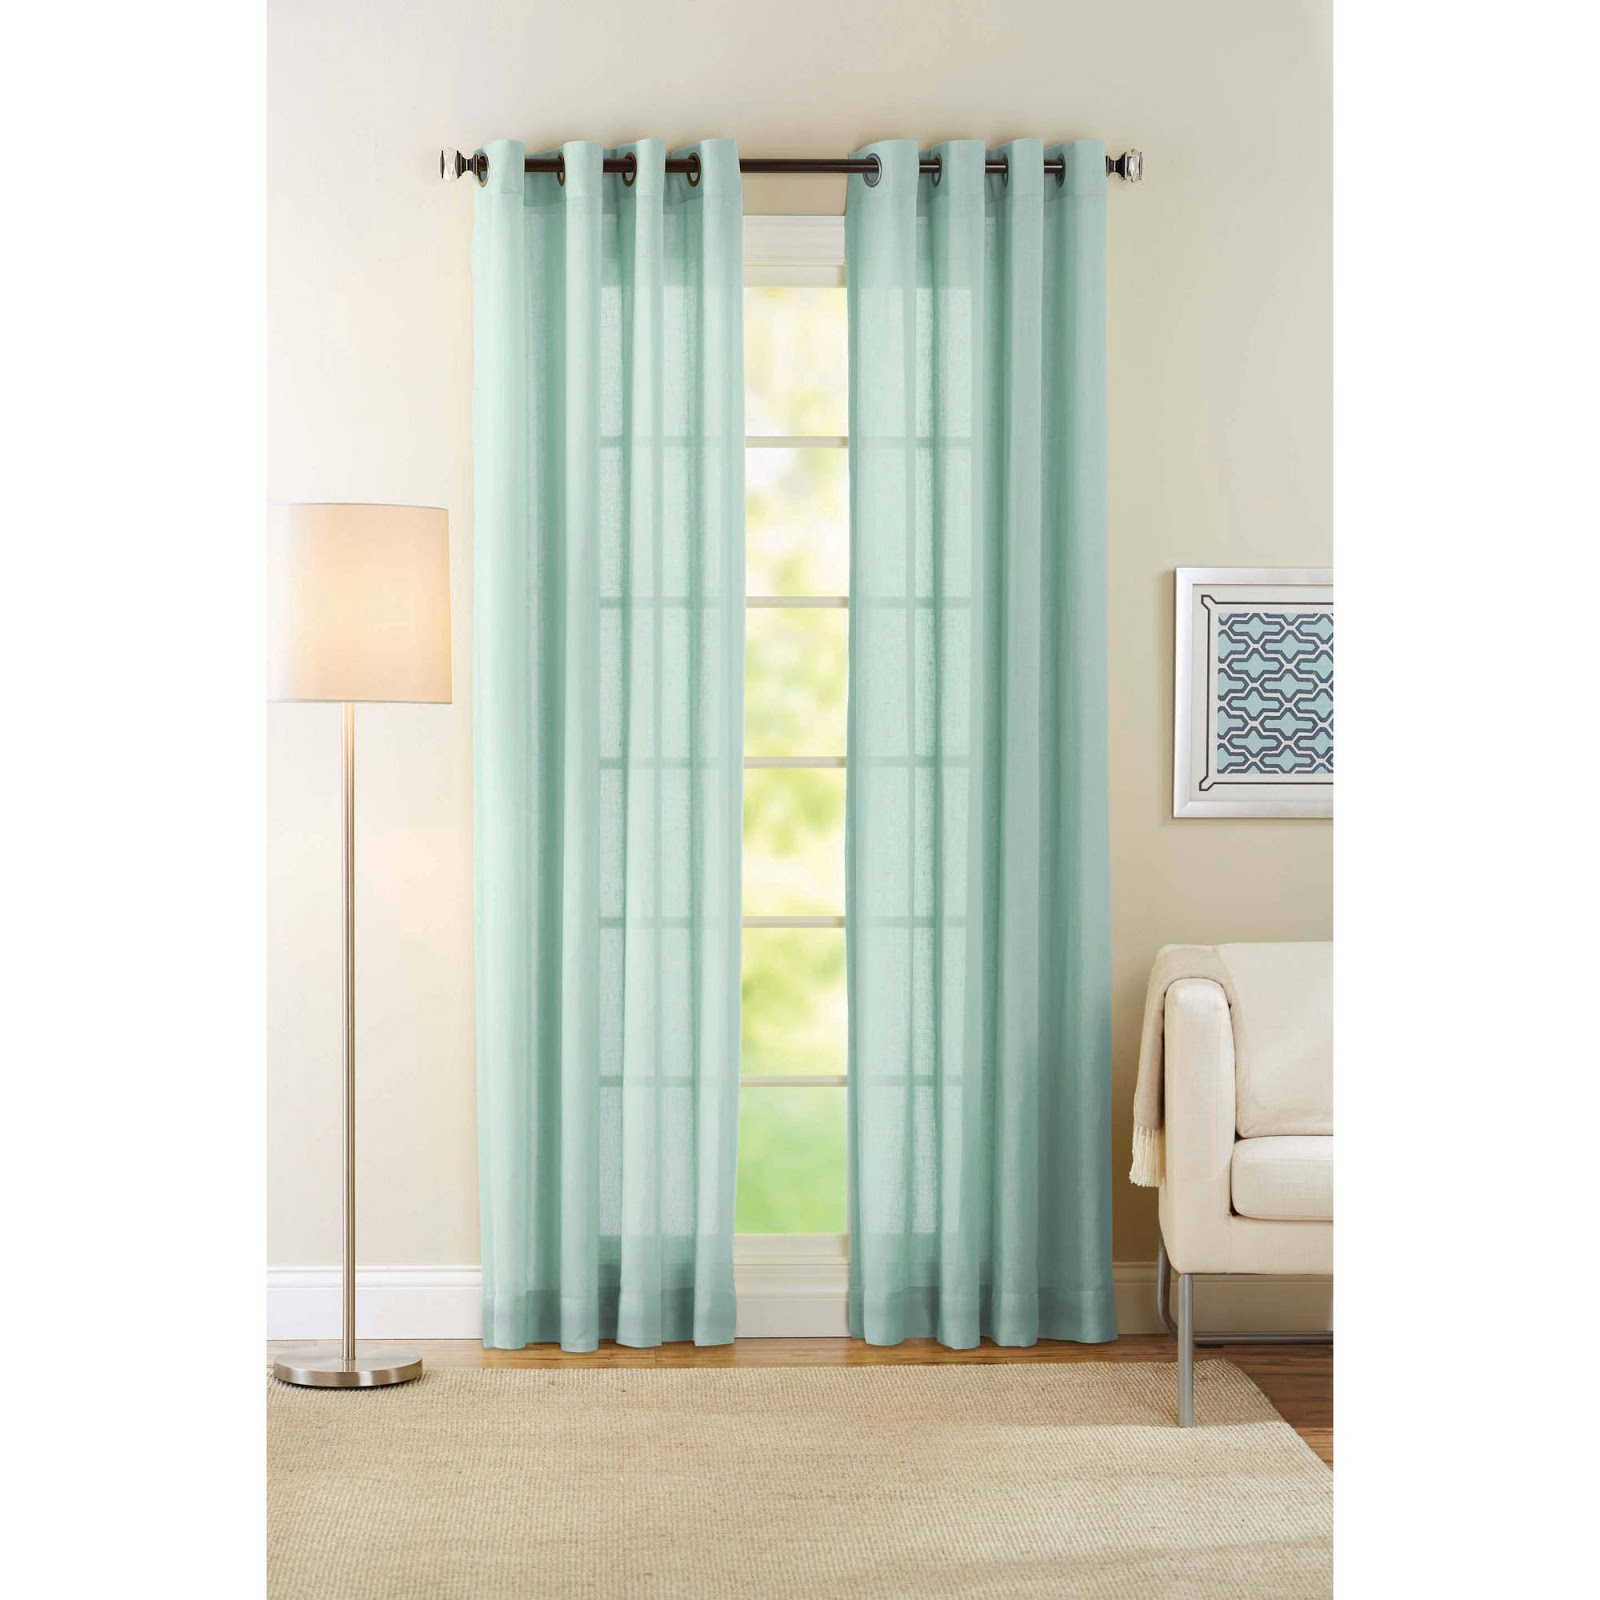 Master Bedroom Curtain Ideas Curtains Matching Bed Sets And Bedspread